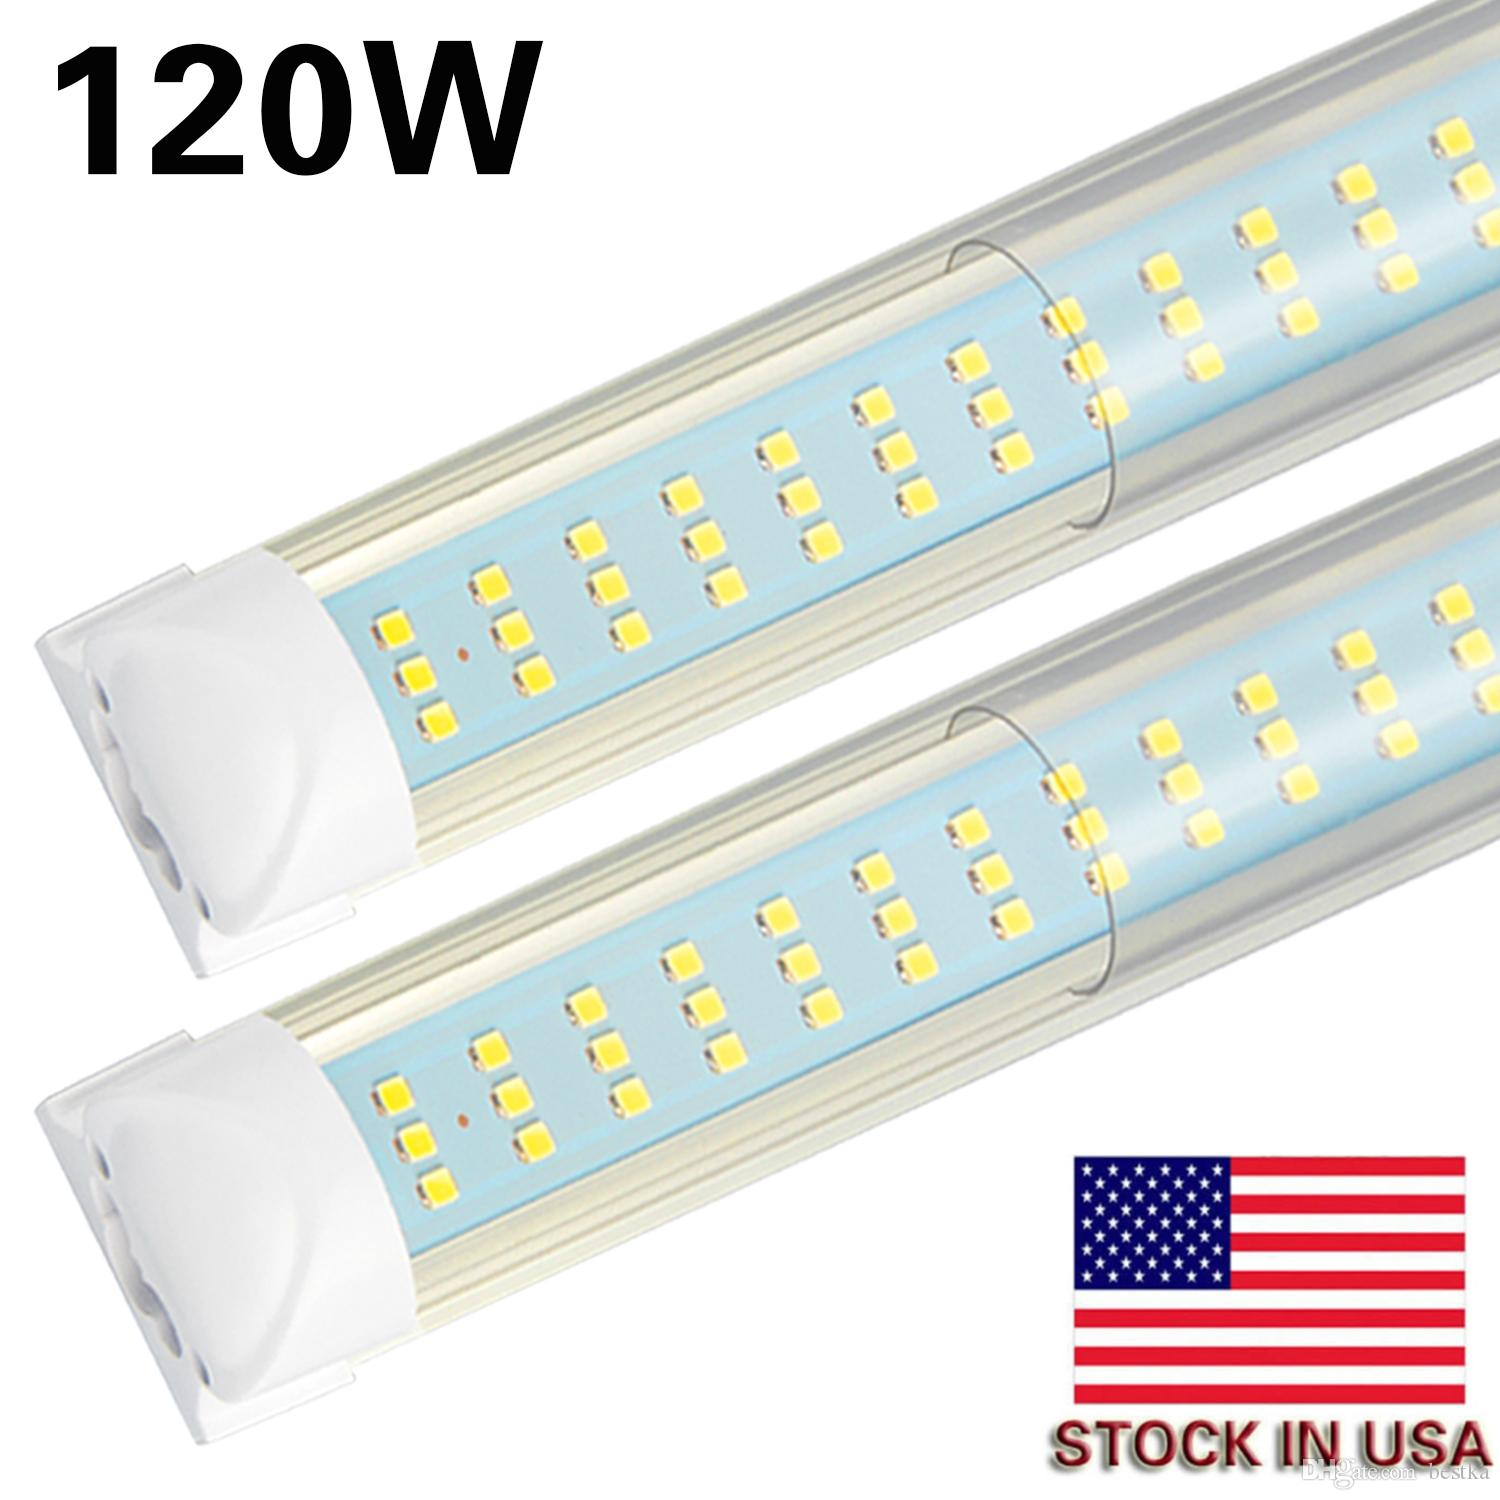 Led Shop Lights >> 8 20pcs 8ft Led Shop Lights Fixture 120w 12000lm 6000k Cool White Flat 3 Row Tube Light No Ballast Super Bright White Bulbs For Garage